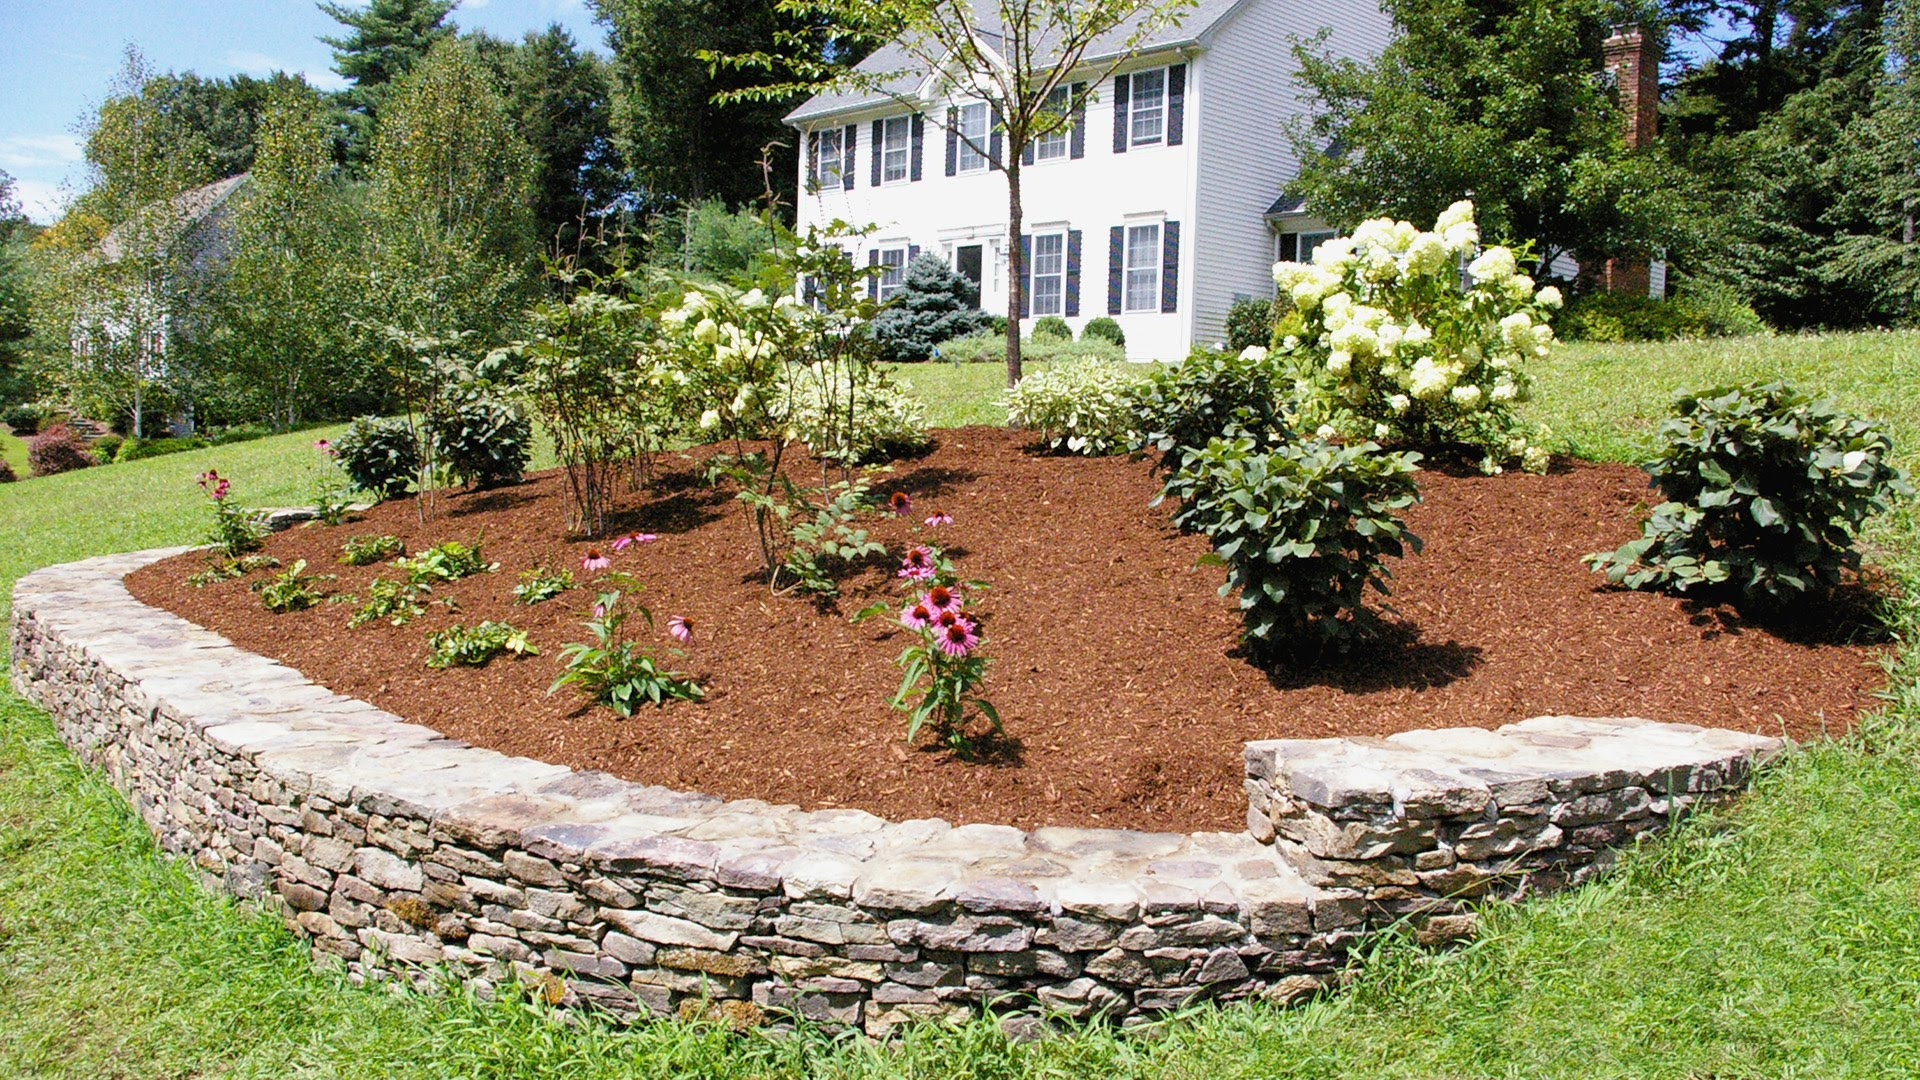 Amazing Landscaping Ideas For A Front Yard: A Berm For Curb Appeal - Youtube throughout Elegant Yard Landscape Pictures